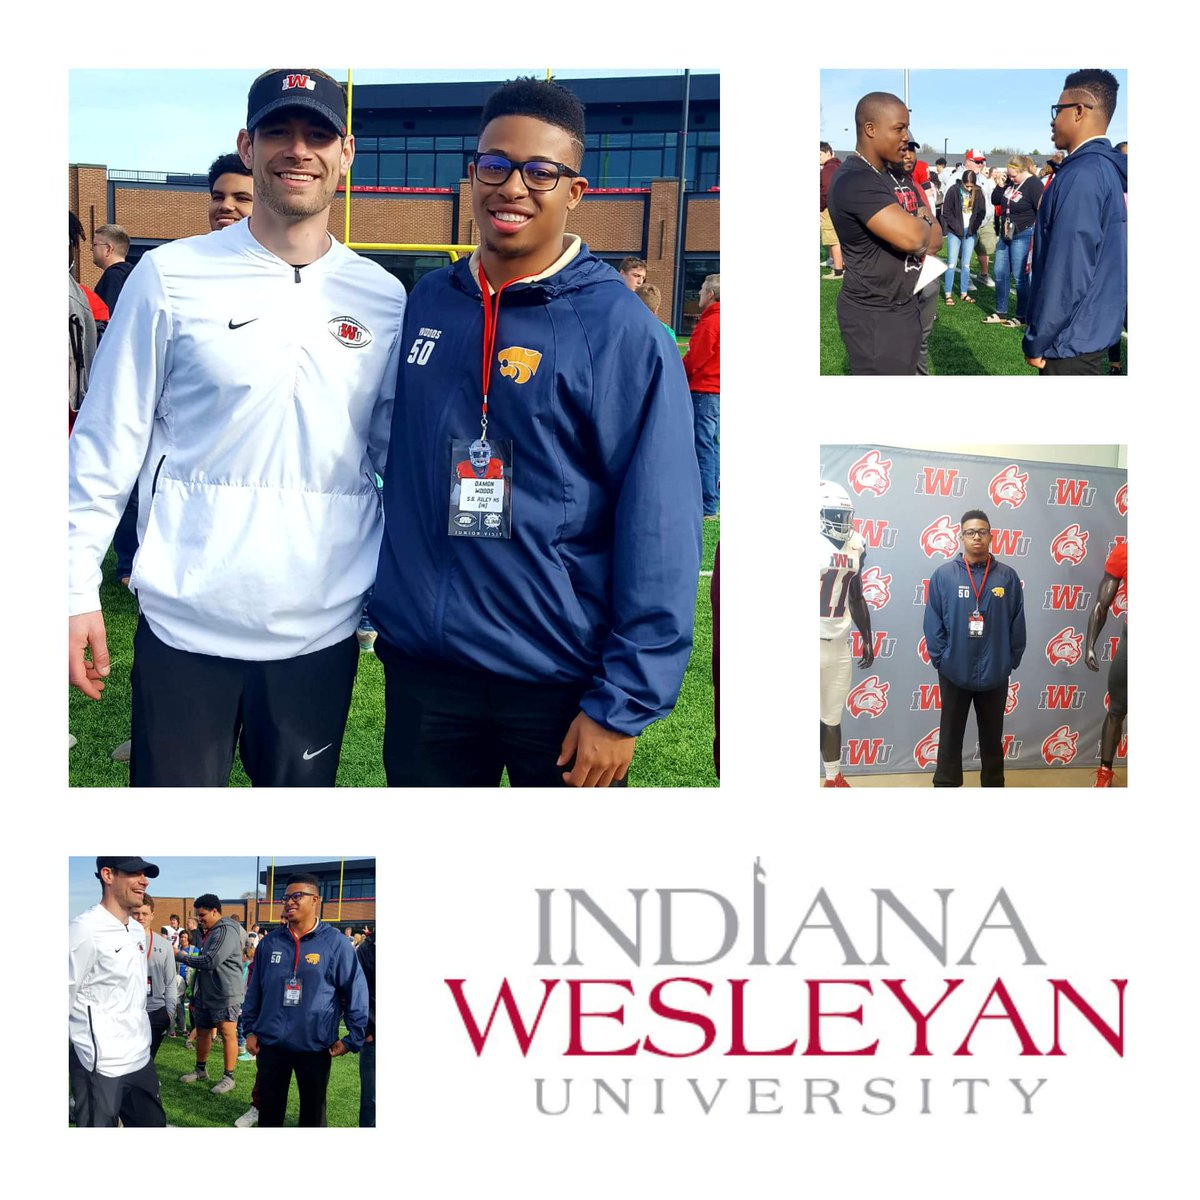 I had a wonderful time visiting  Indiana Wesleyan University for Junior Day. I appreciate @CoachKyleBuresh,  @CoachBuzzyB, and all the coaches for the good time today.